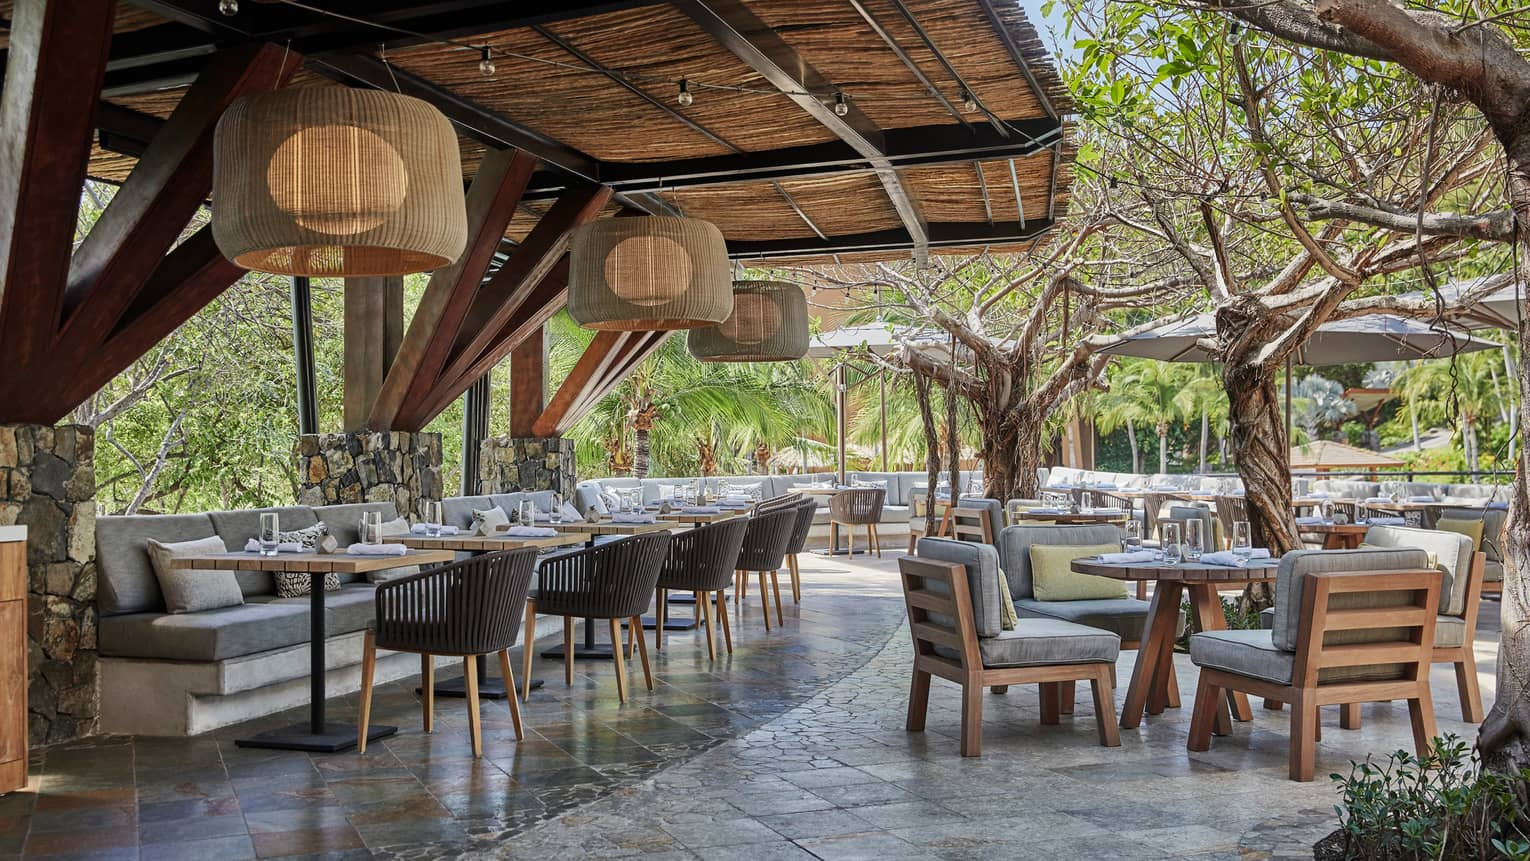 Bahia restaurant patio dining tables and chairs with thick grey cushions, large bamboo round lights hang from awning